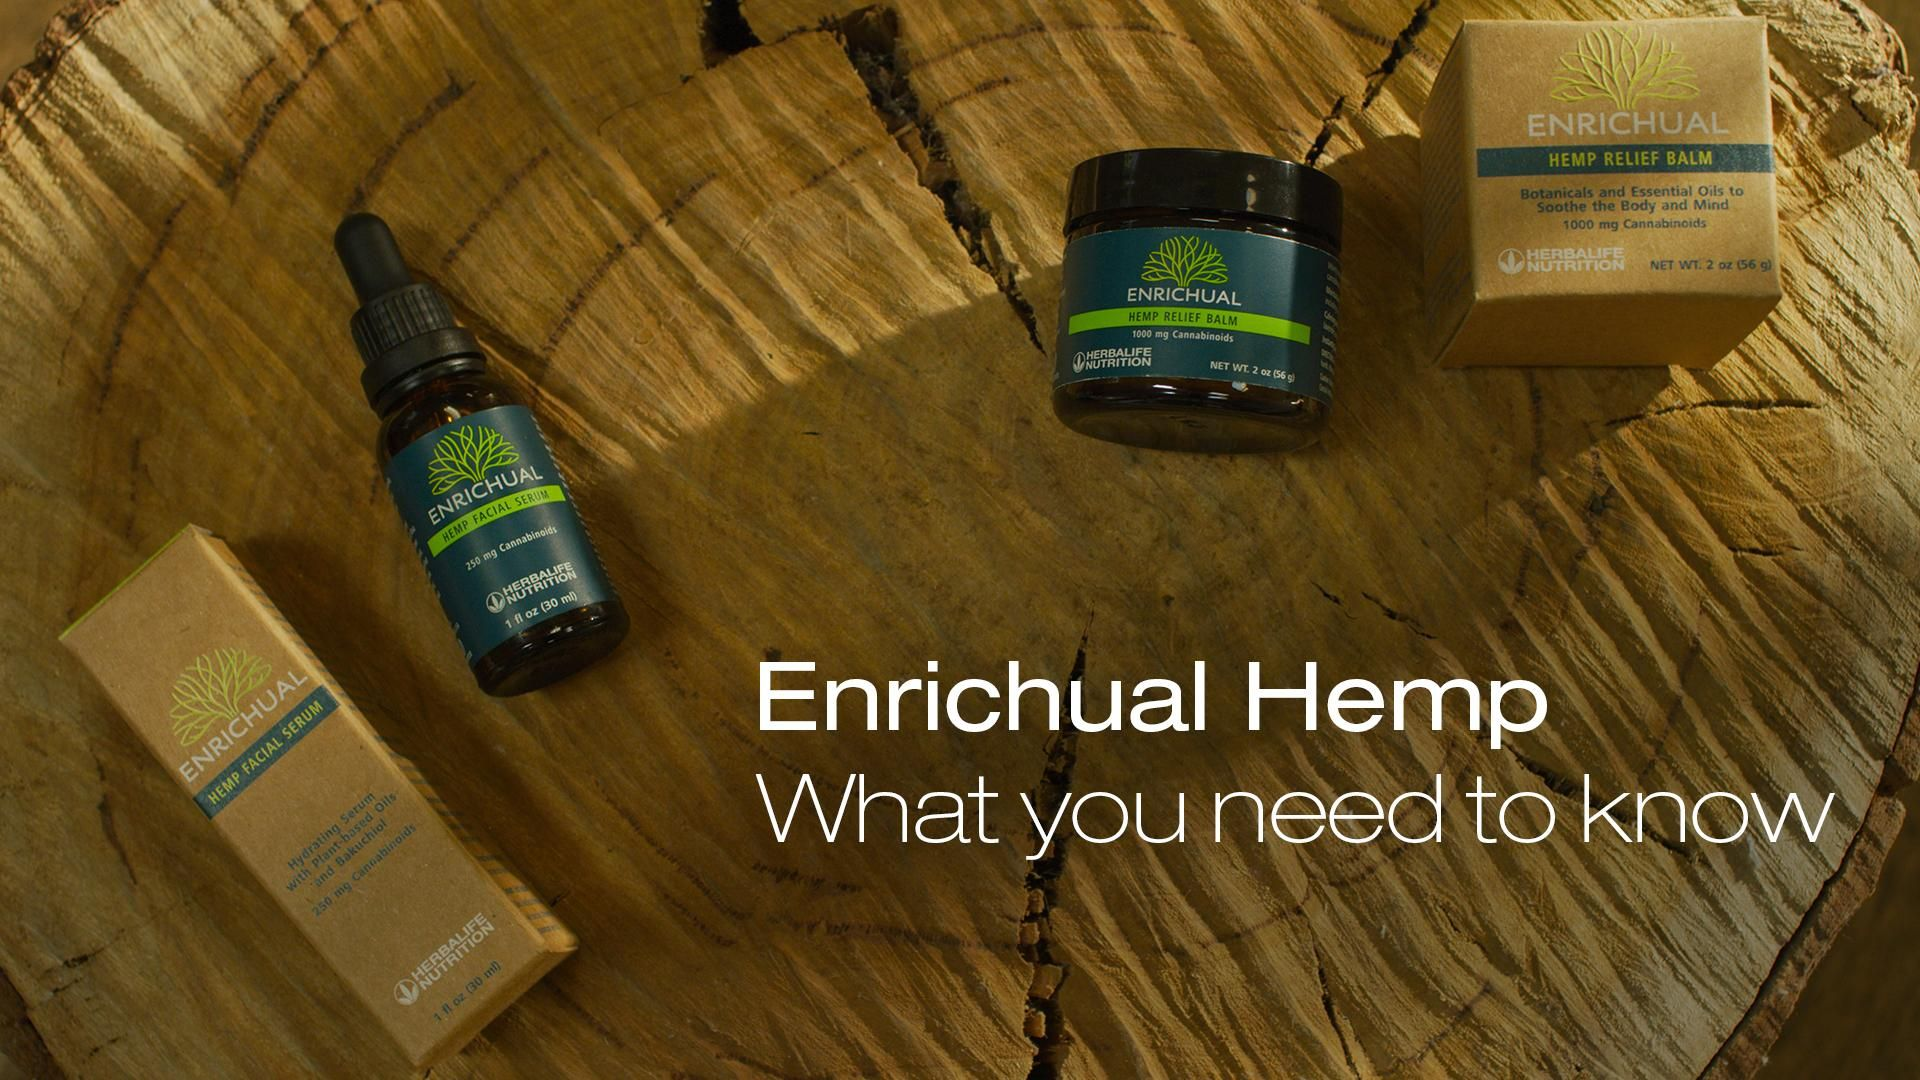 Enrichual Hemp: What you need to know